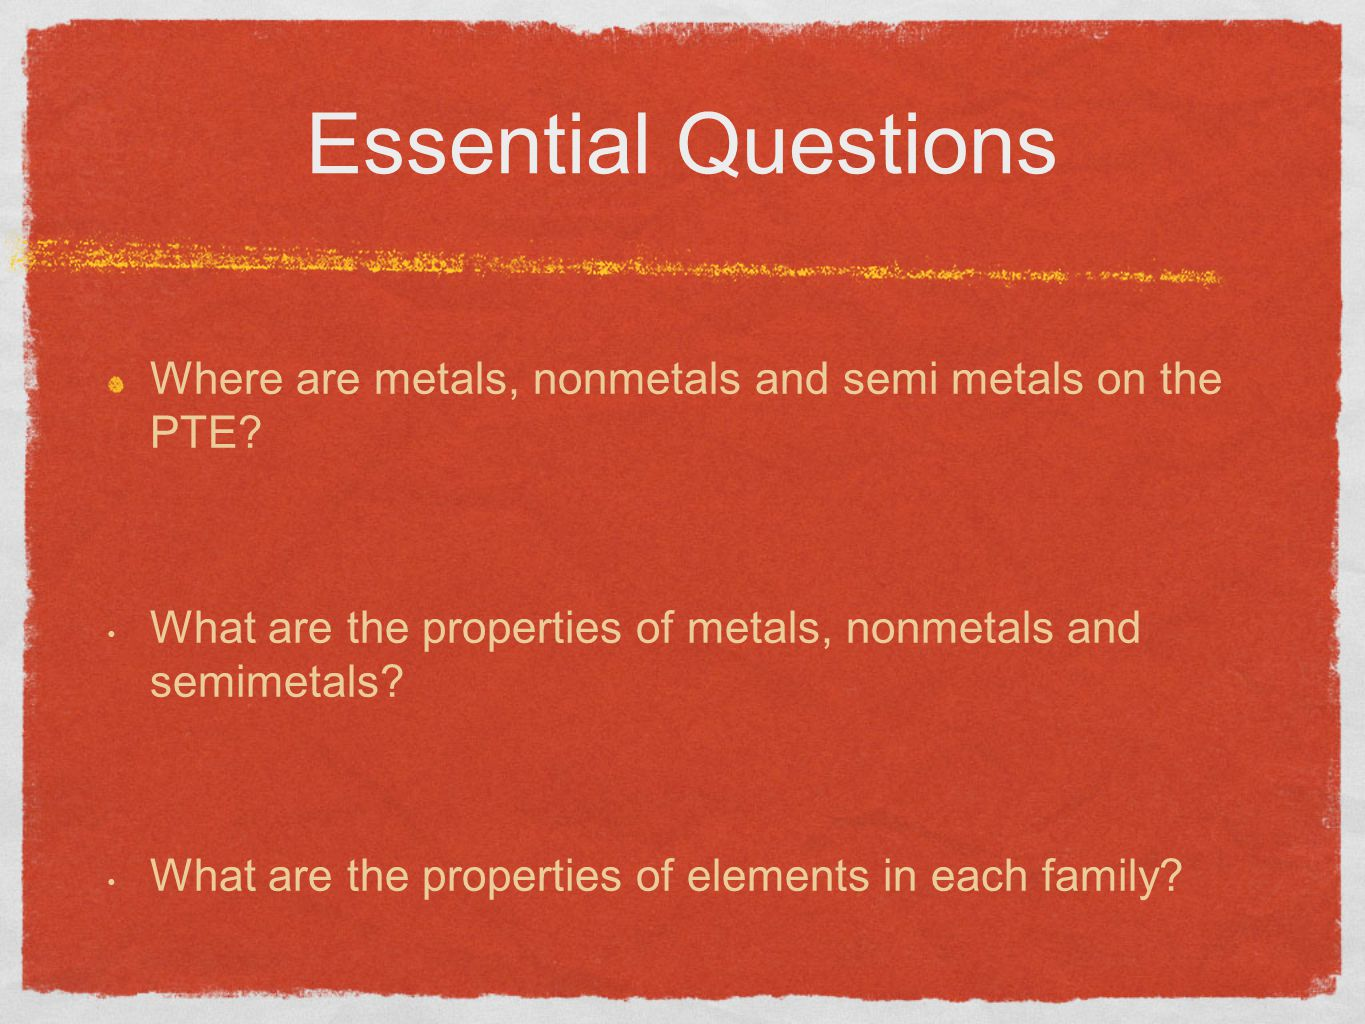 Essential Questions Where are metals, nonmetals and semi metals on the PTE? What are the properties of metals, nonmetals and semimetals? What are the